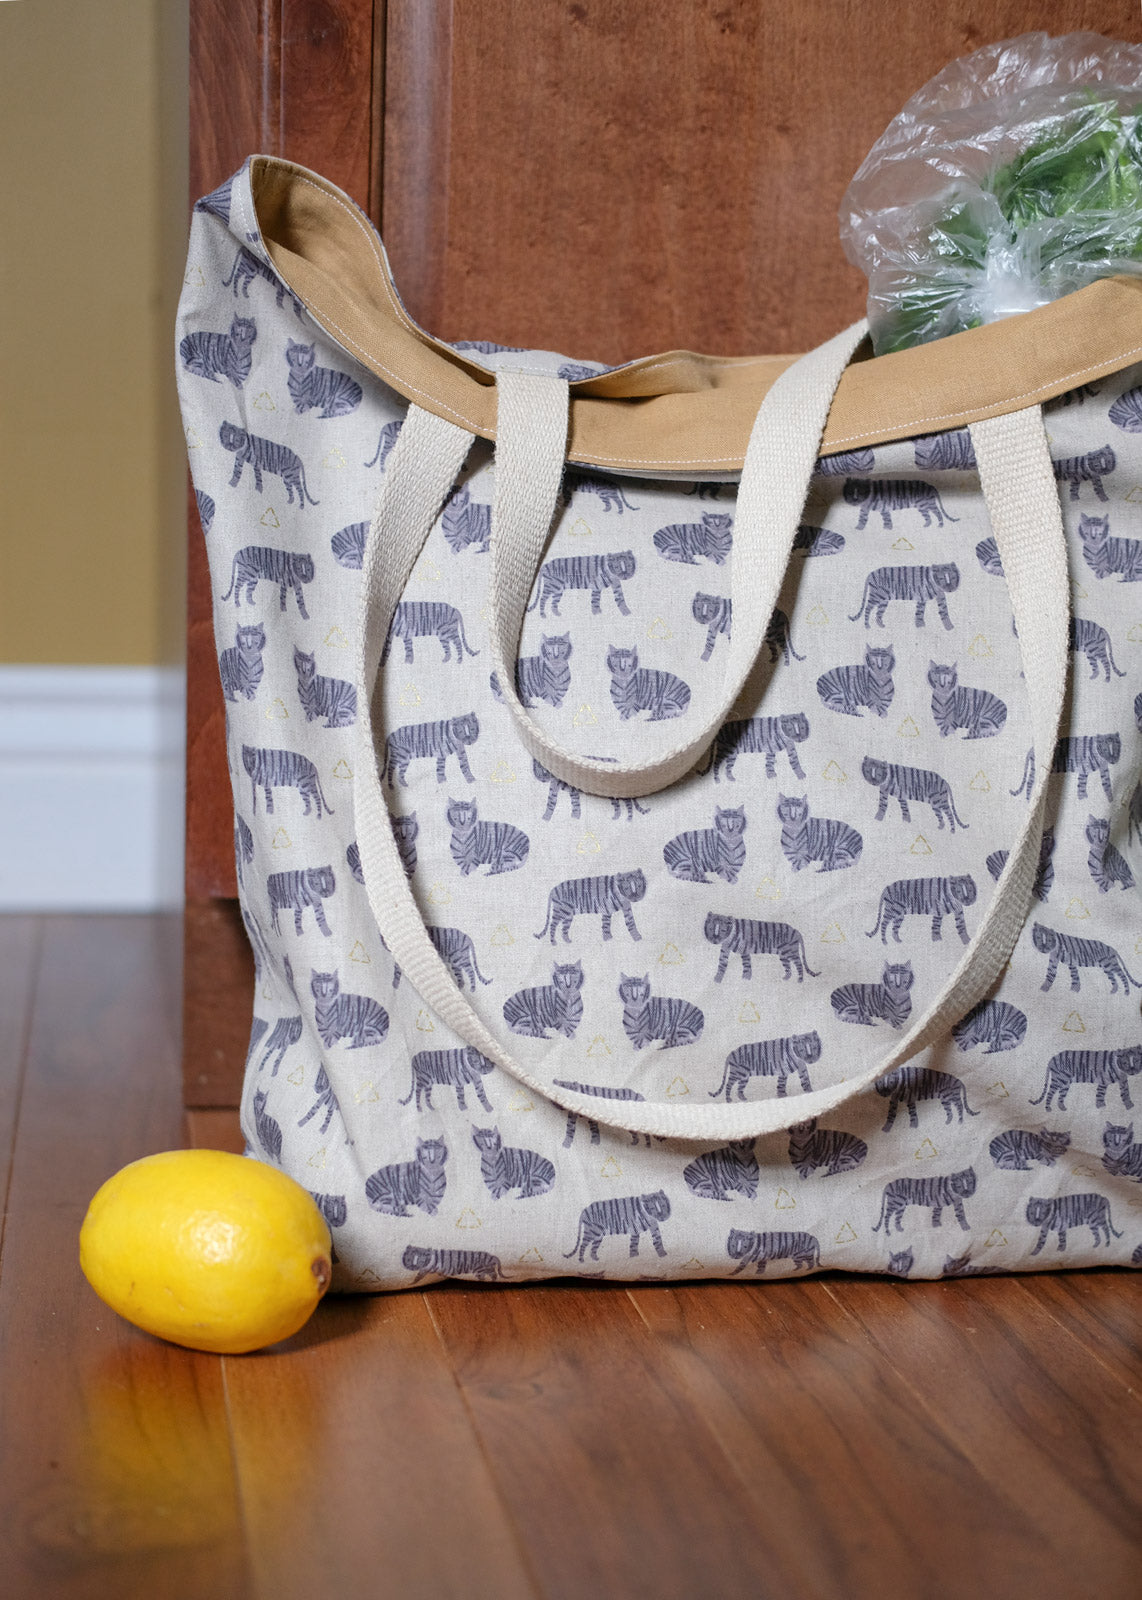 Fancy Tiger Crafts Market Tote sitting on the floor with a lemon in front